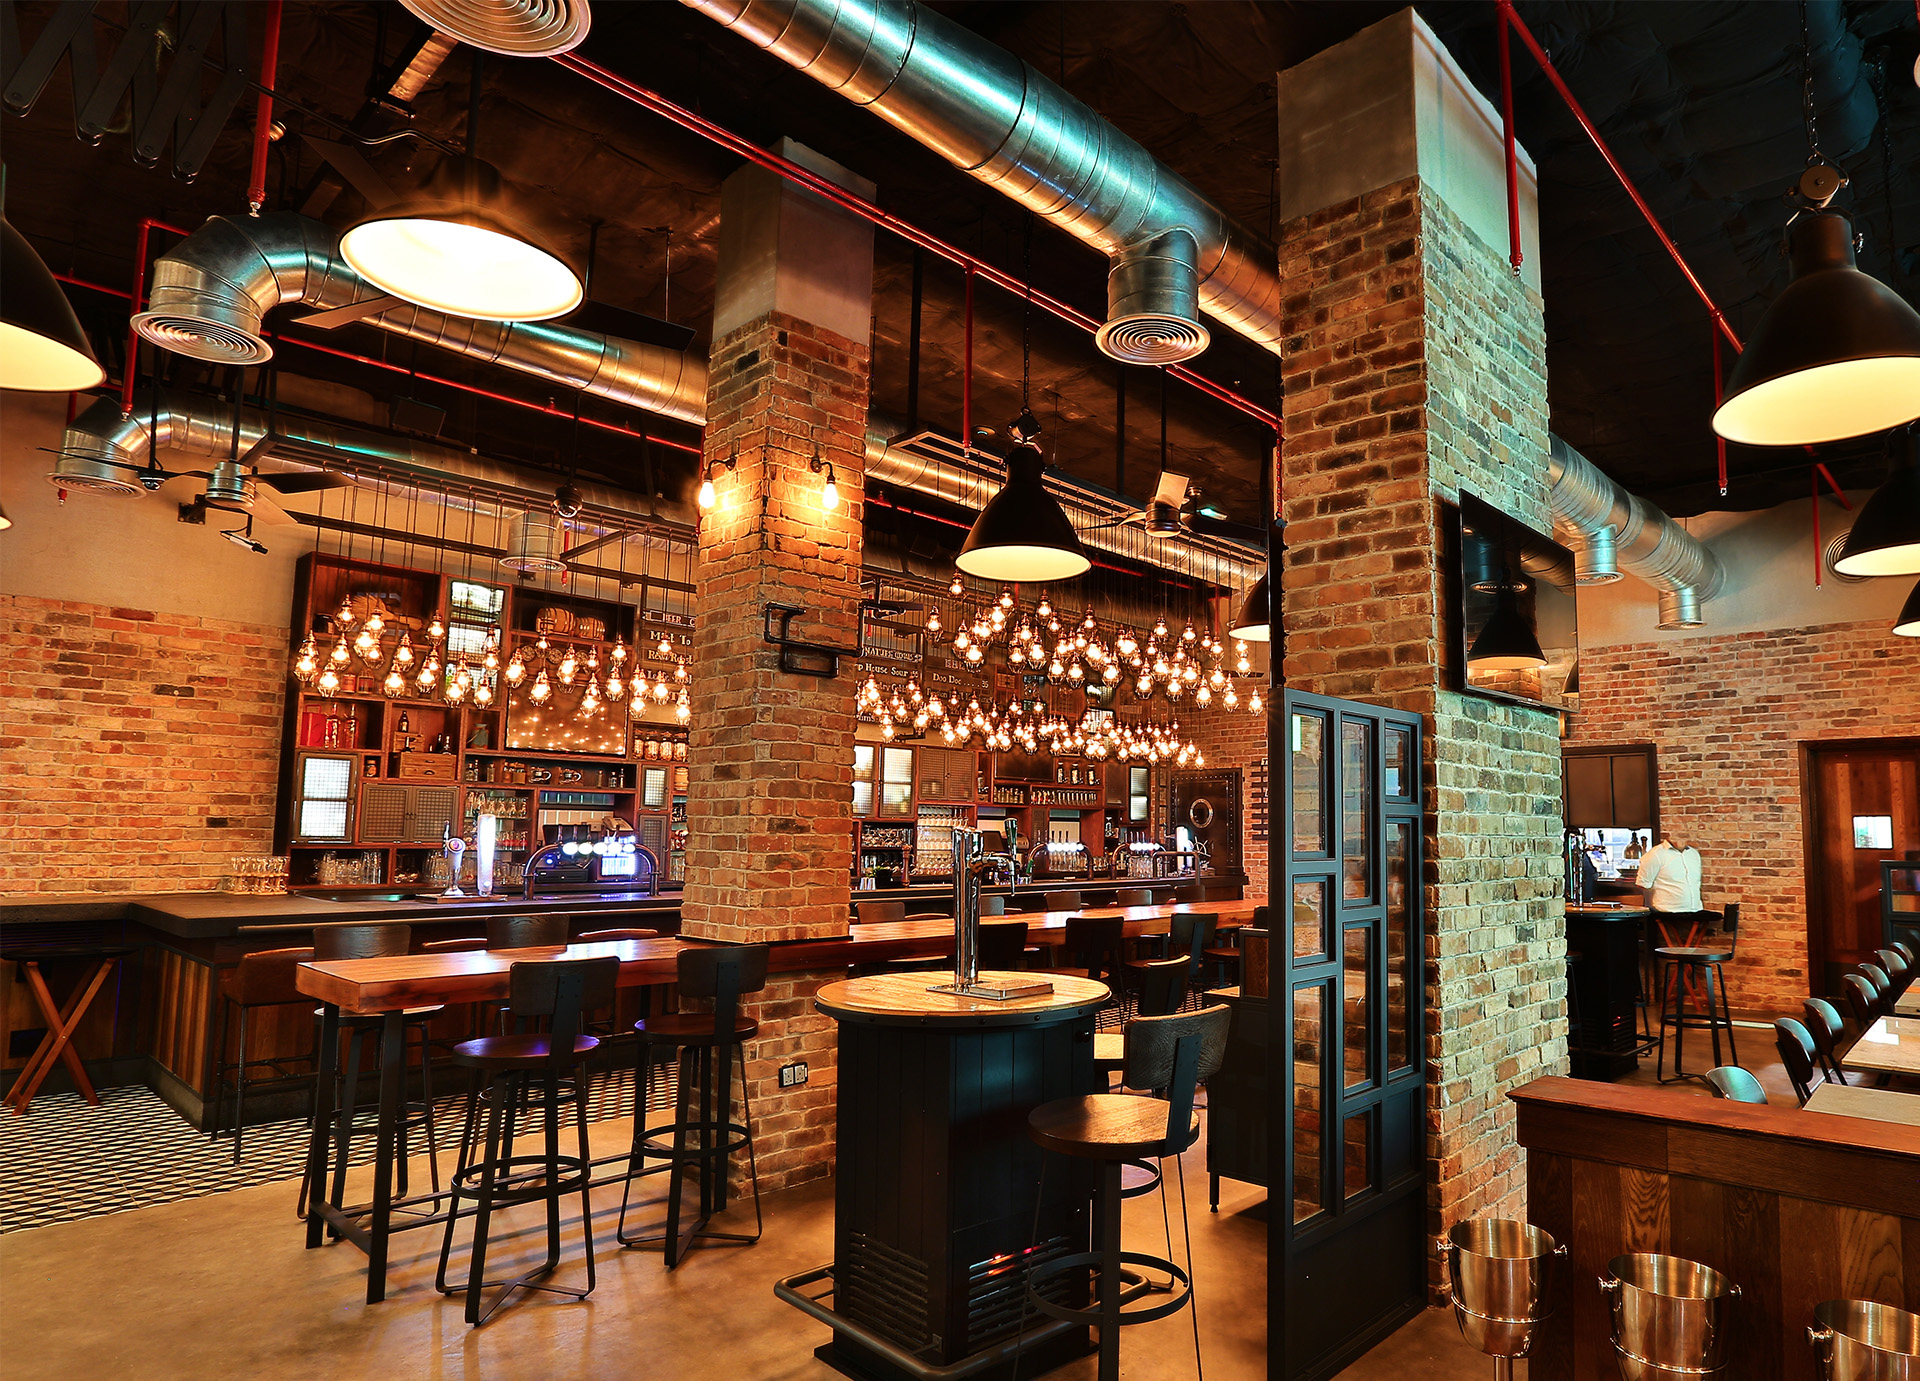 Creneau Interior Design Agency Dubai Middle East Tap House Interior